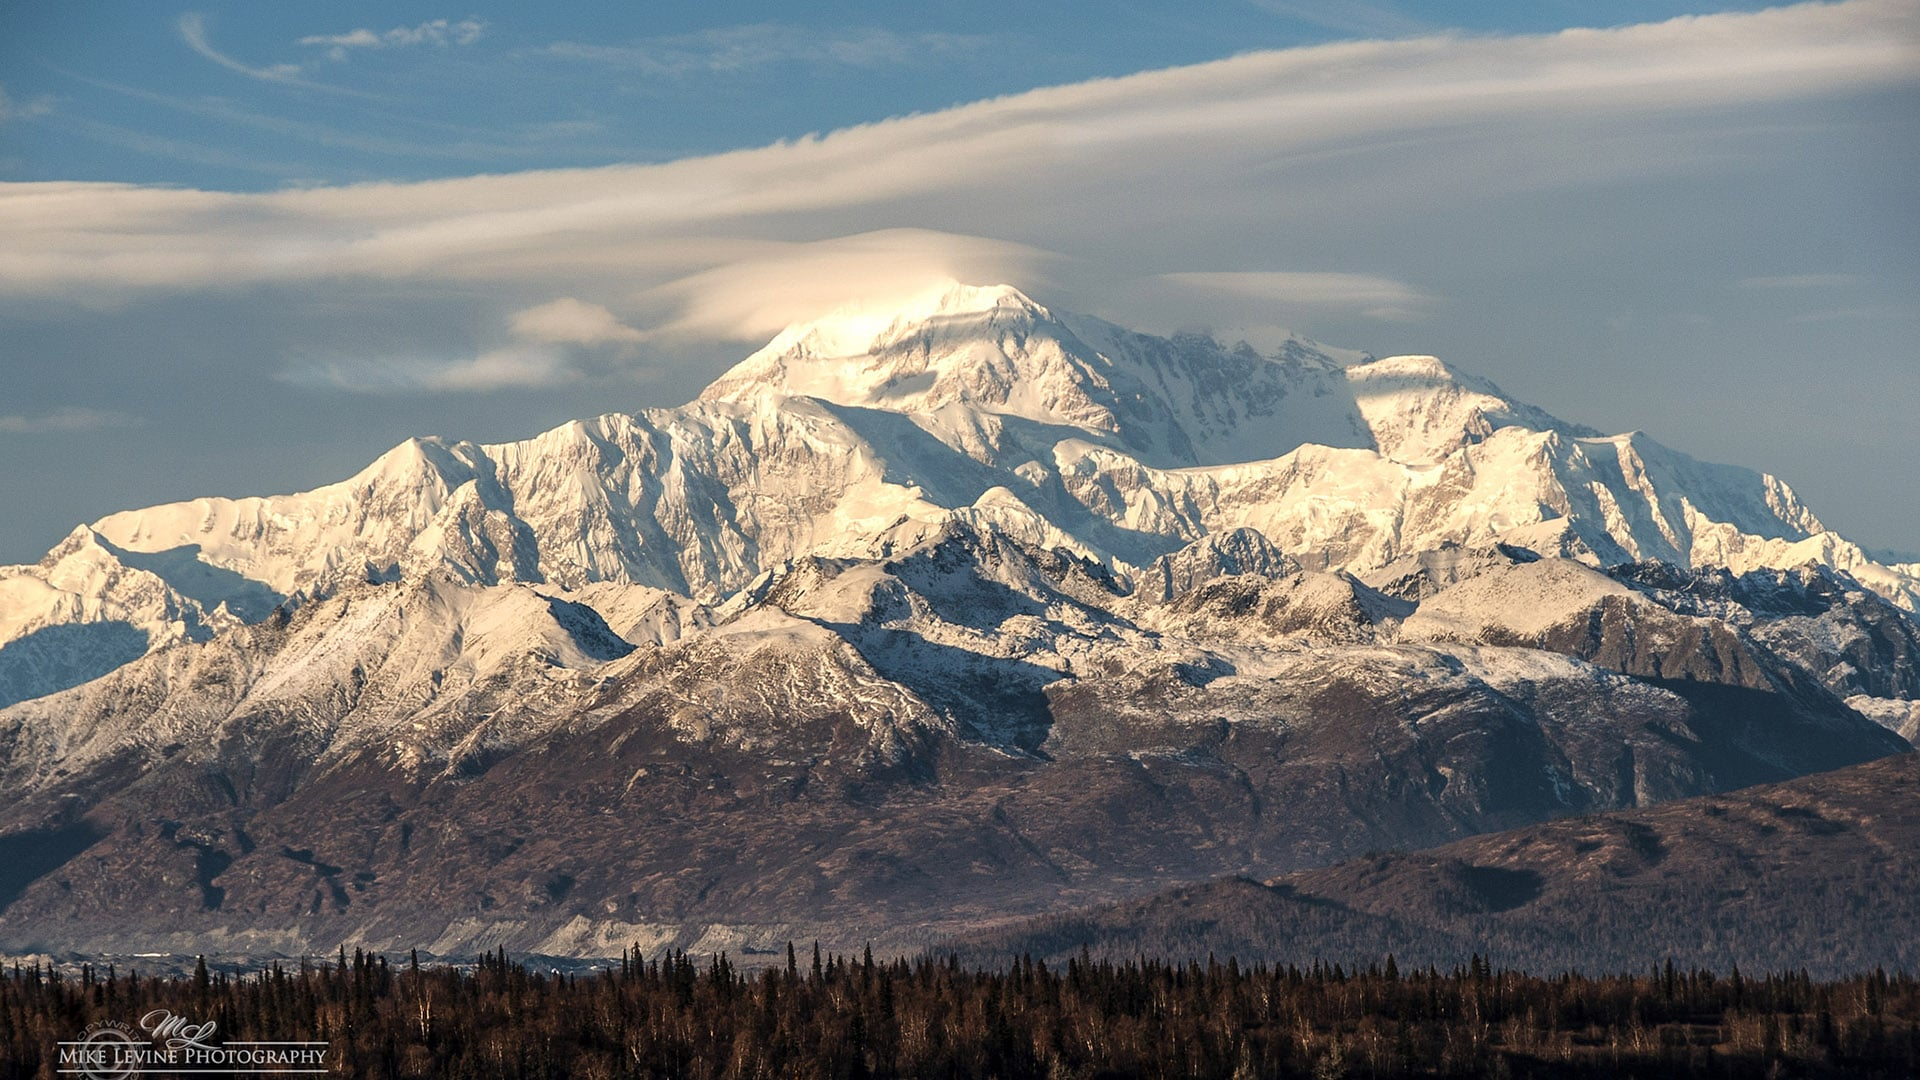 Car Games 2016 >> 10+ Mount McKinley Denali wallpapers High Quality Download